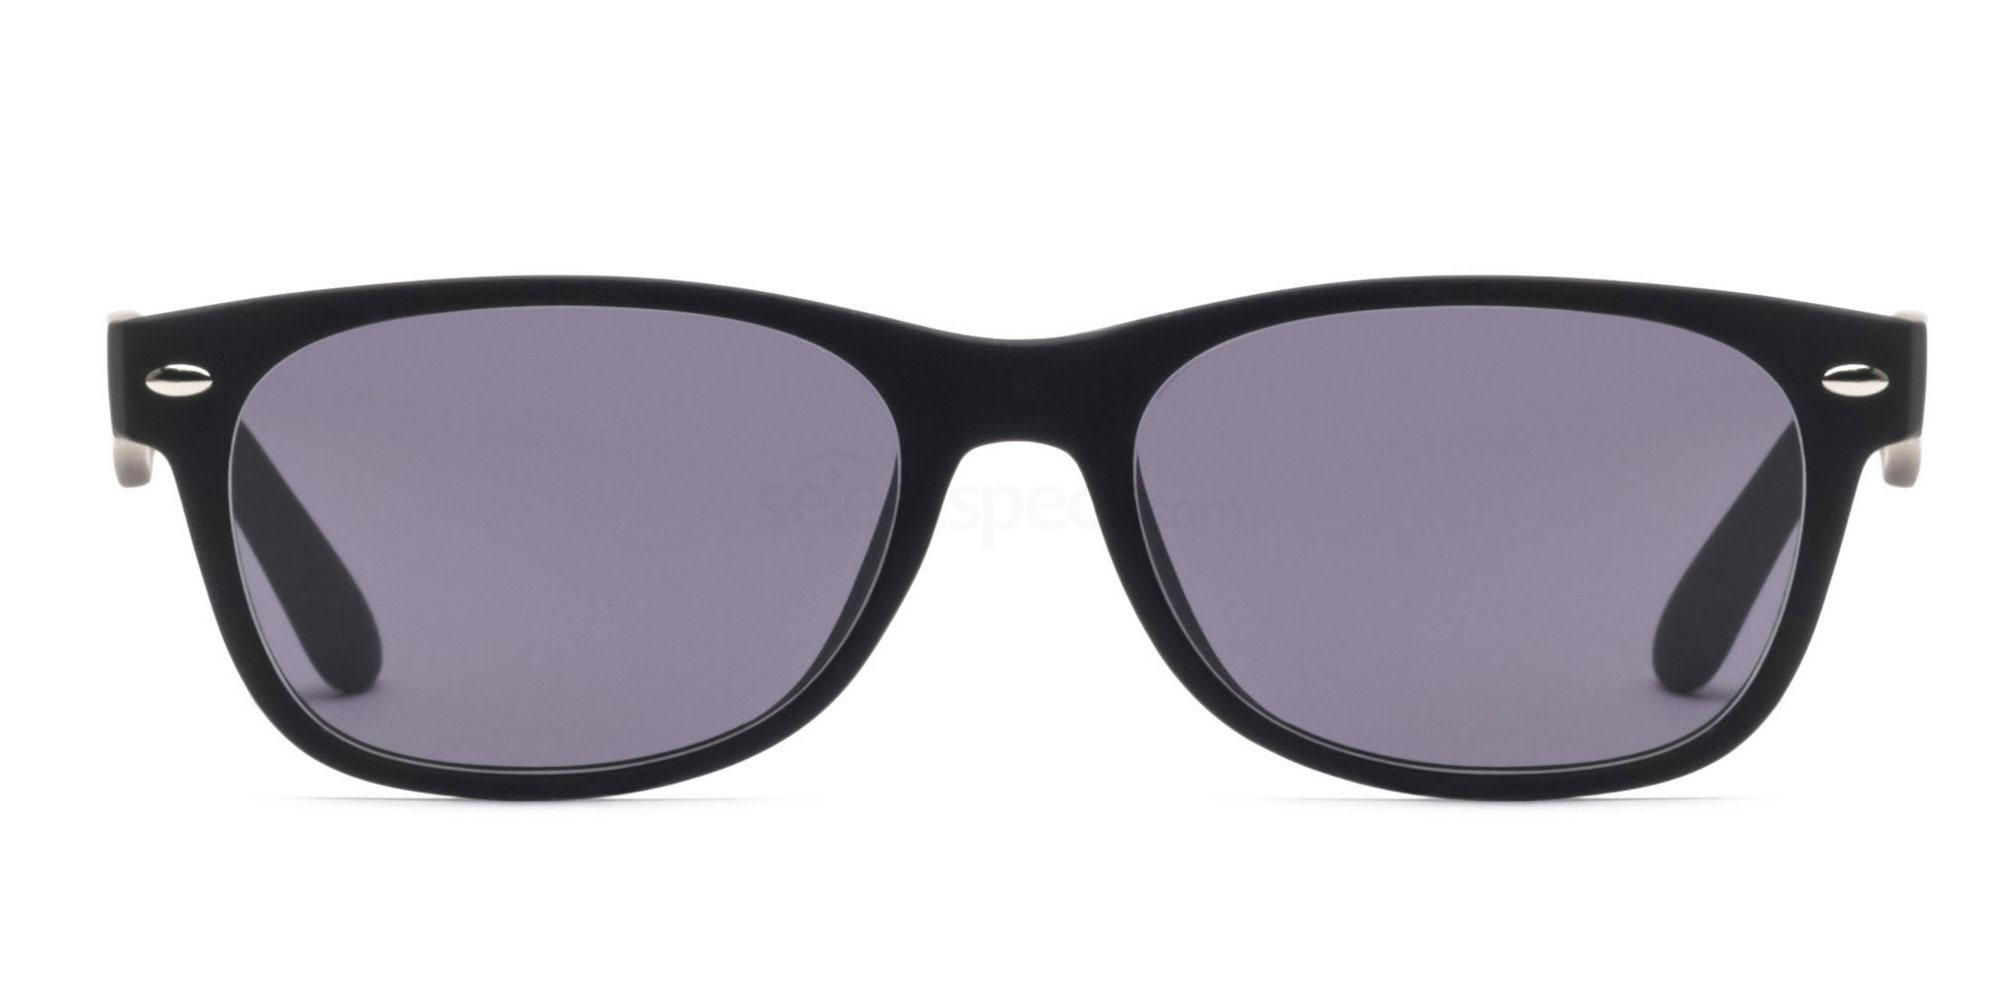 Savannah 8122 sunglasses